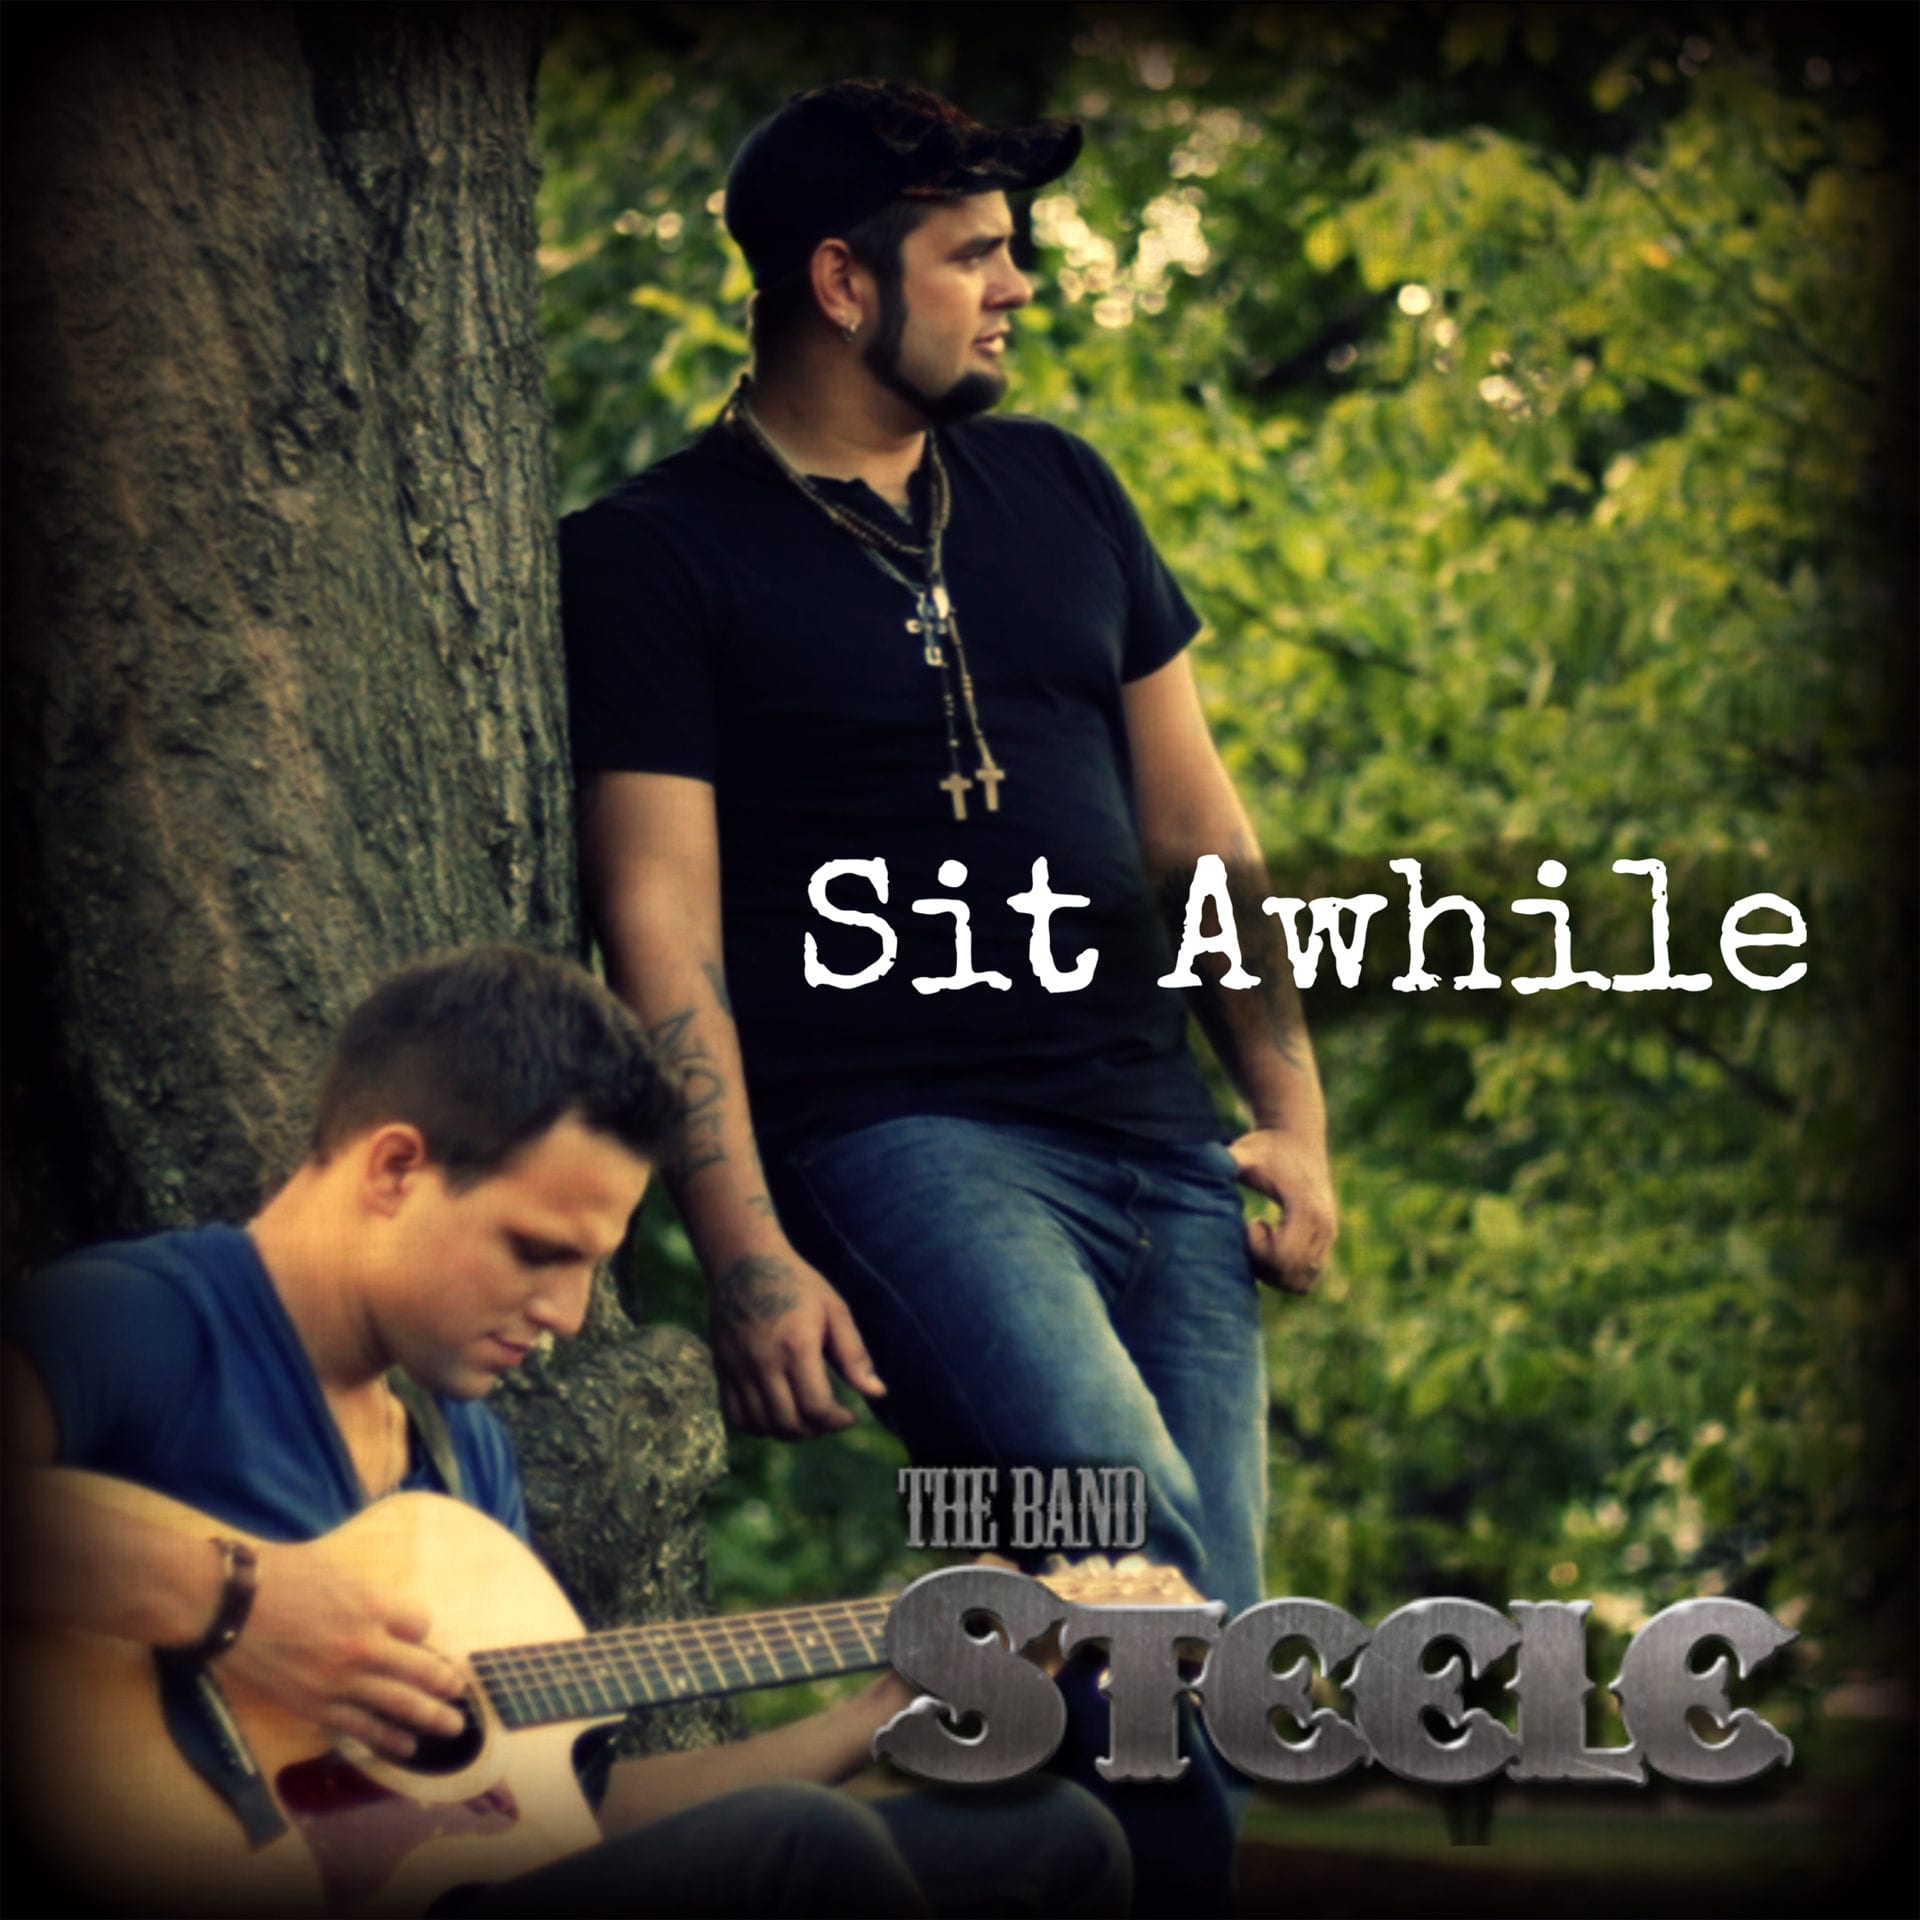 Sit Awhile Digital Single Art